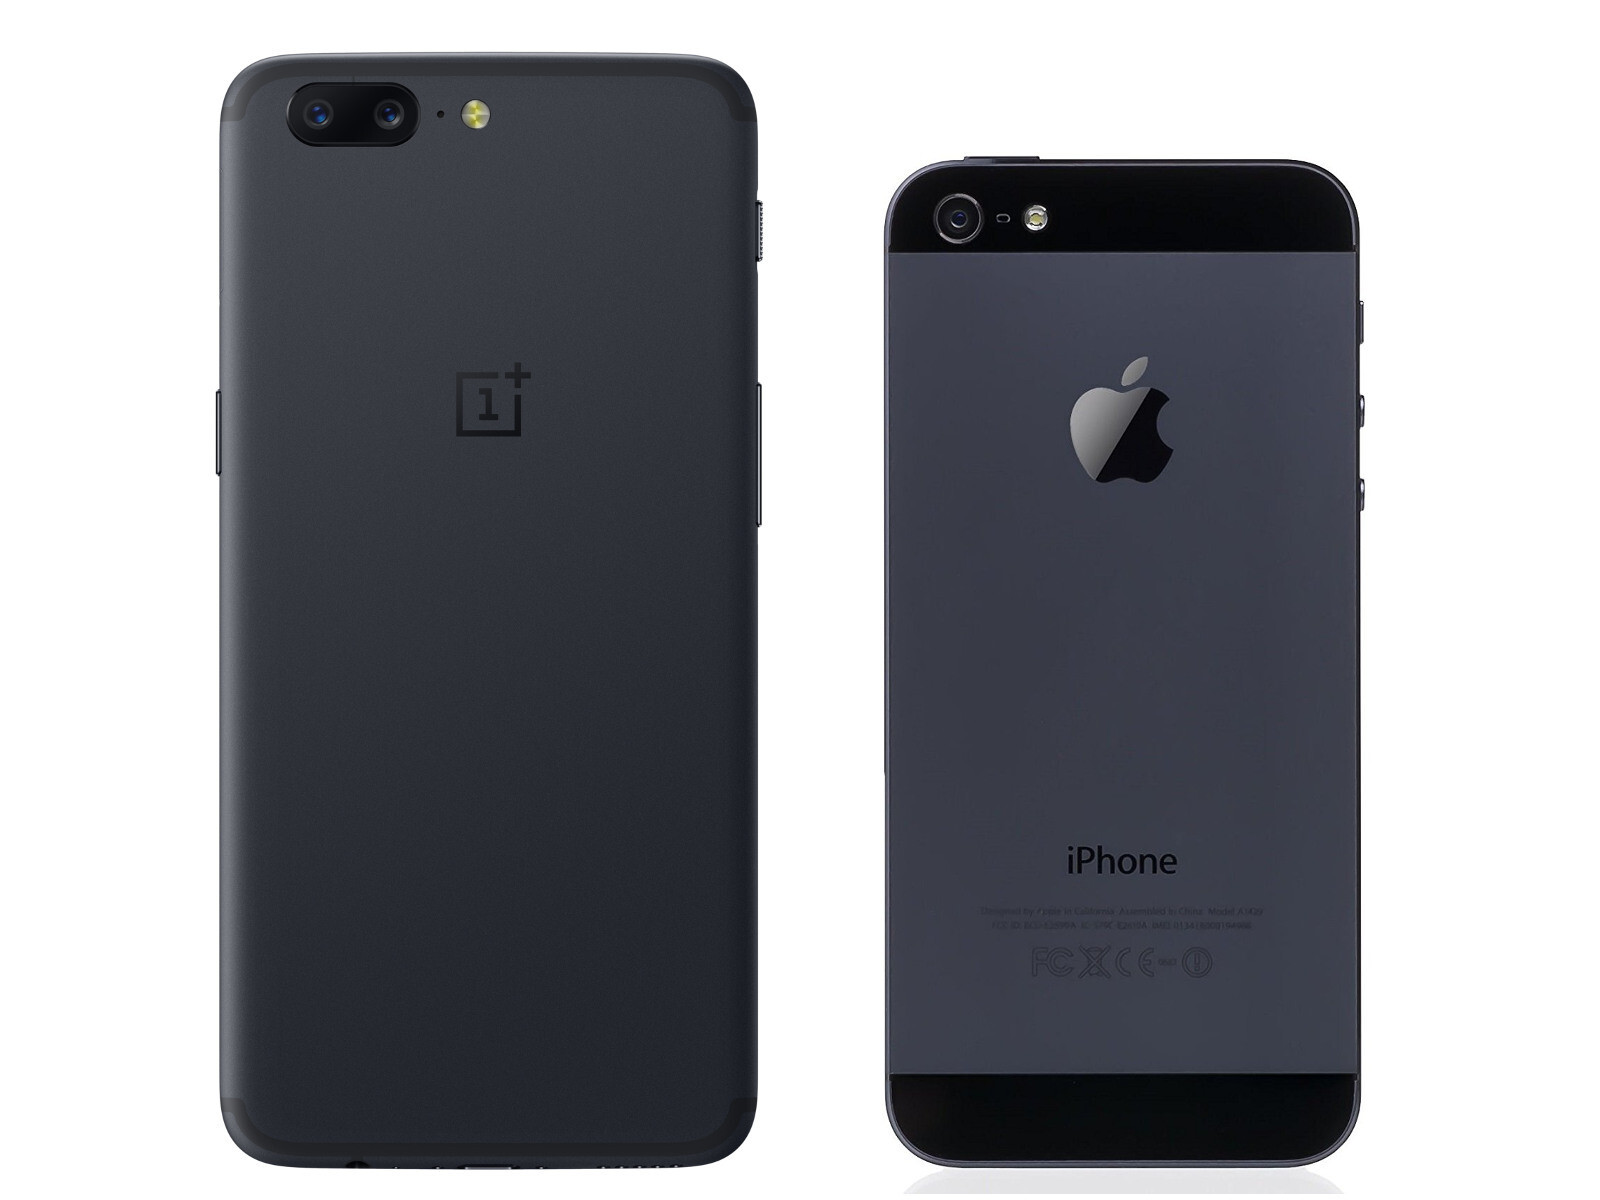 The Slate Gray Variant Reminds Us Of IPhone 5 In Black